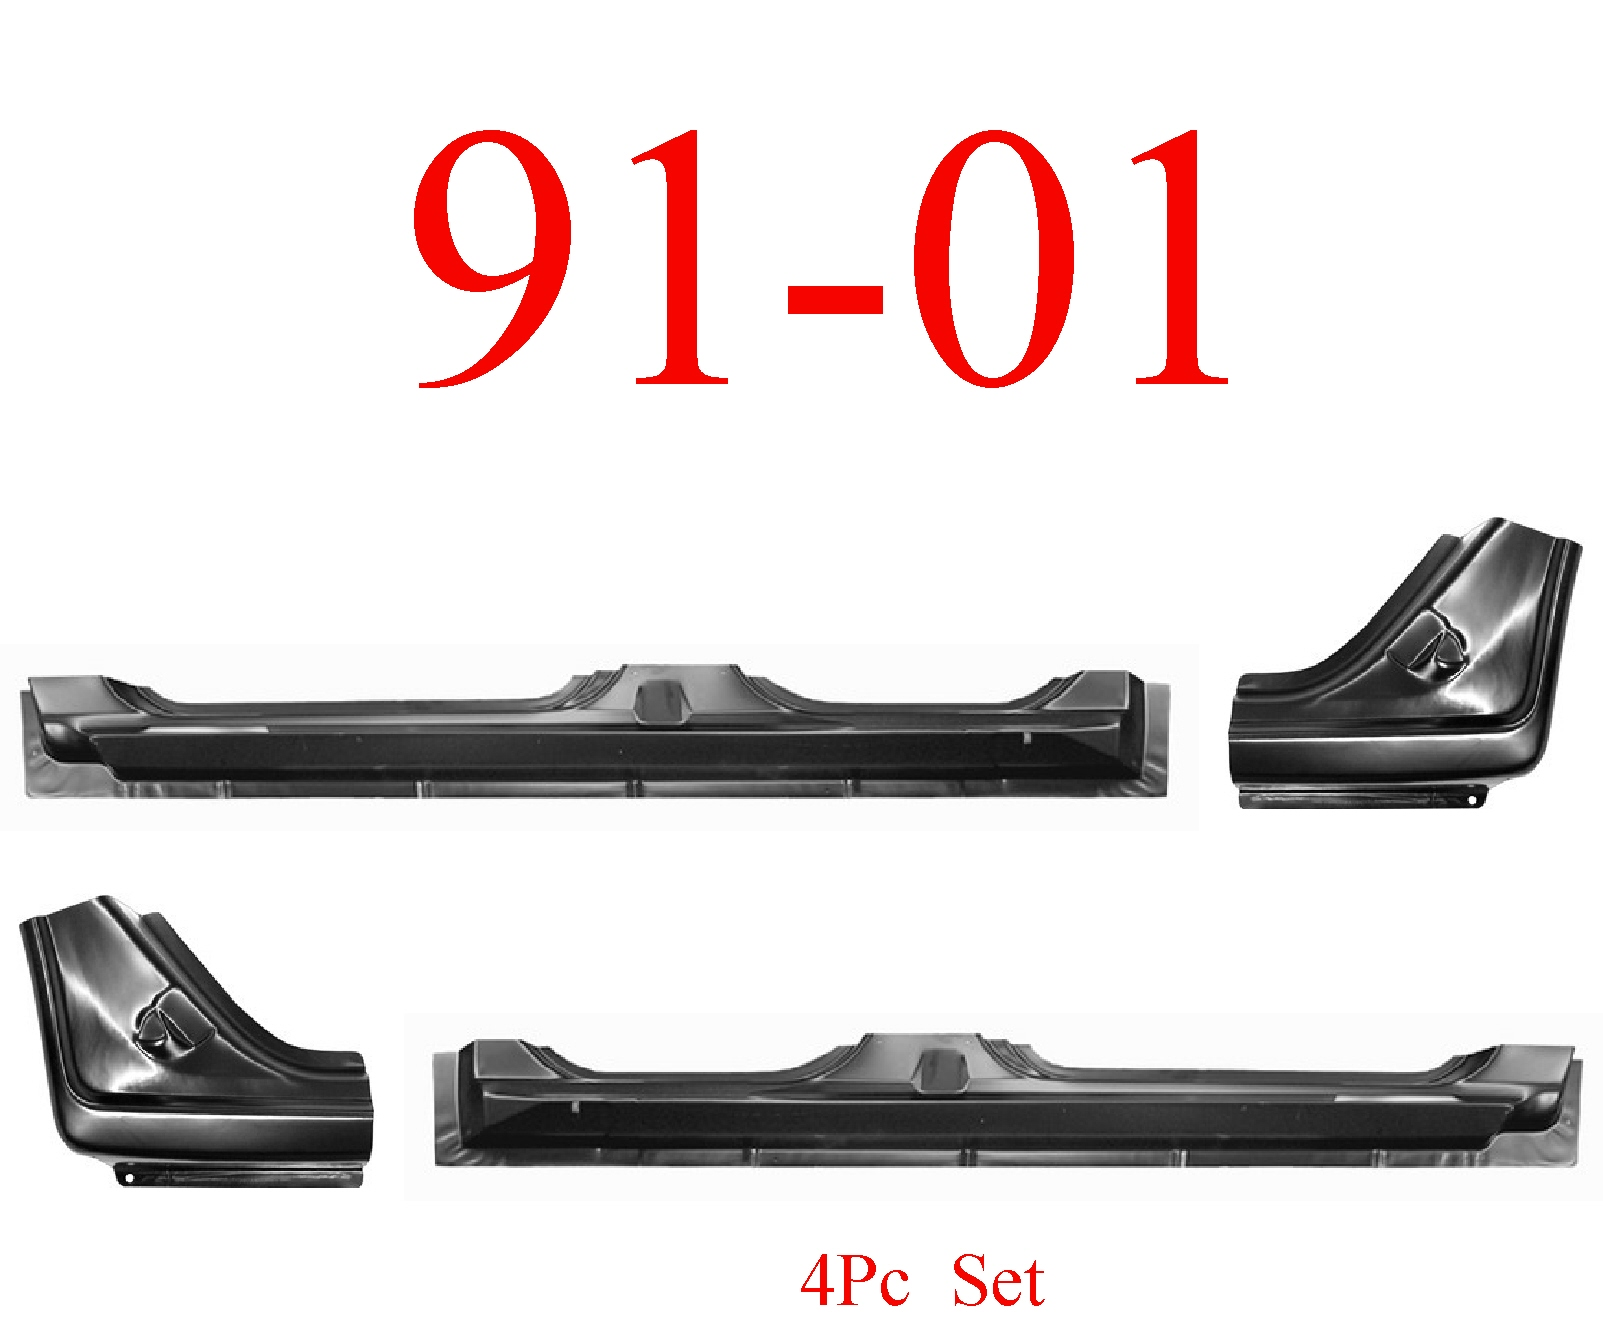 91-01 Ford Explorer 4Pc Extended Rocker & Dog Leg Kit 4 Door